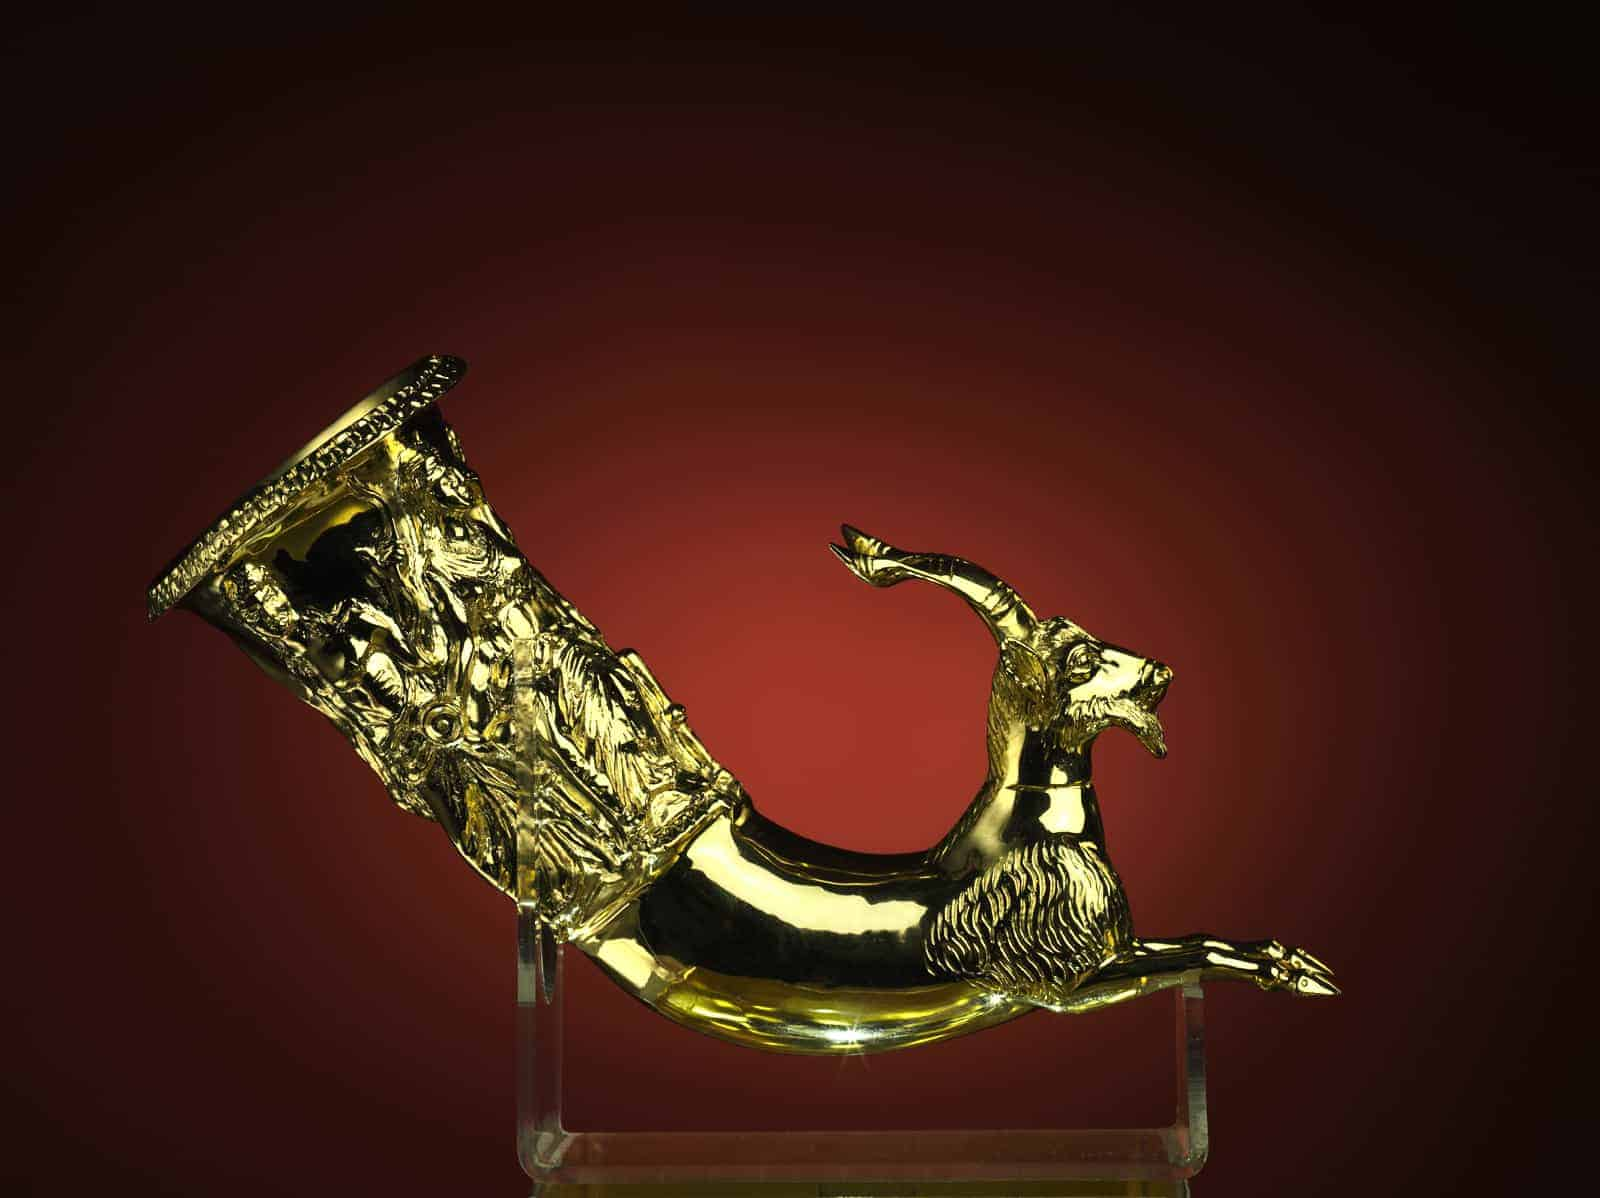 The gold treasures of the Thracians